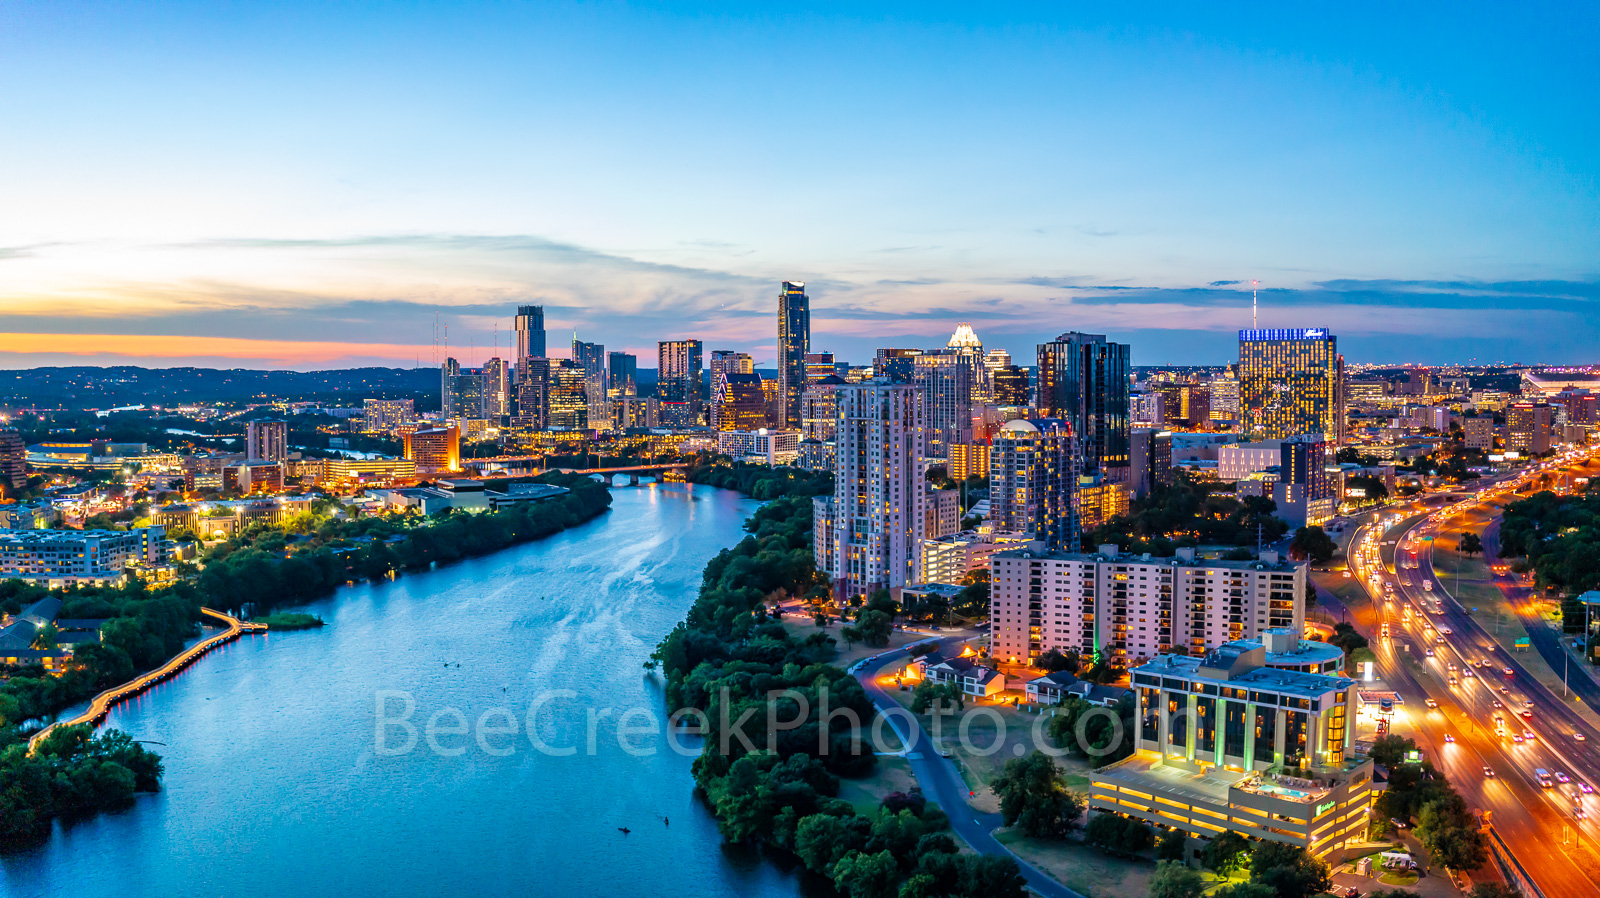 Austin Aerial Skyline Twilight View - Austin Aerial skyline picture at Twilight taken from a birds eye view. This is another...